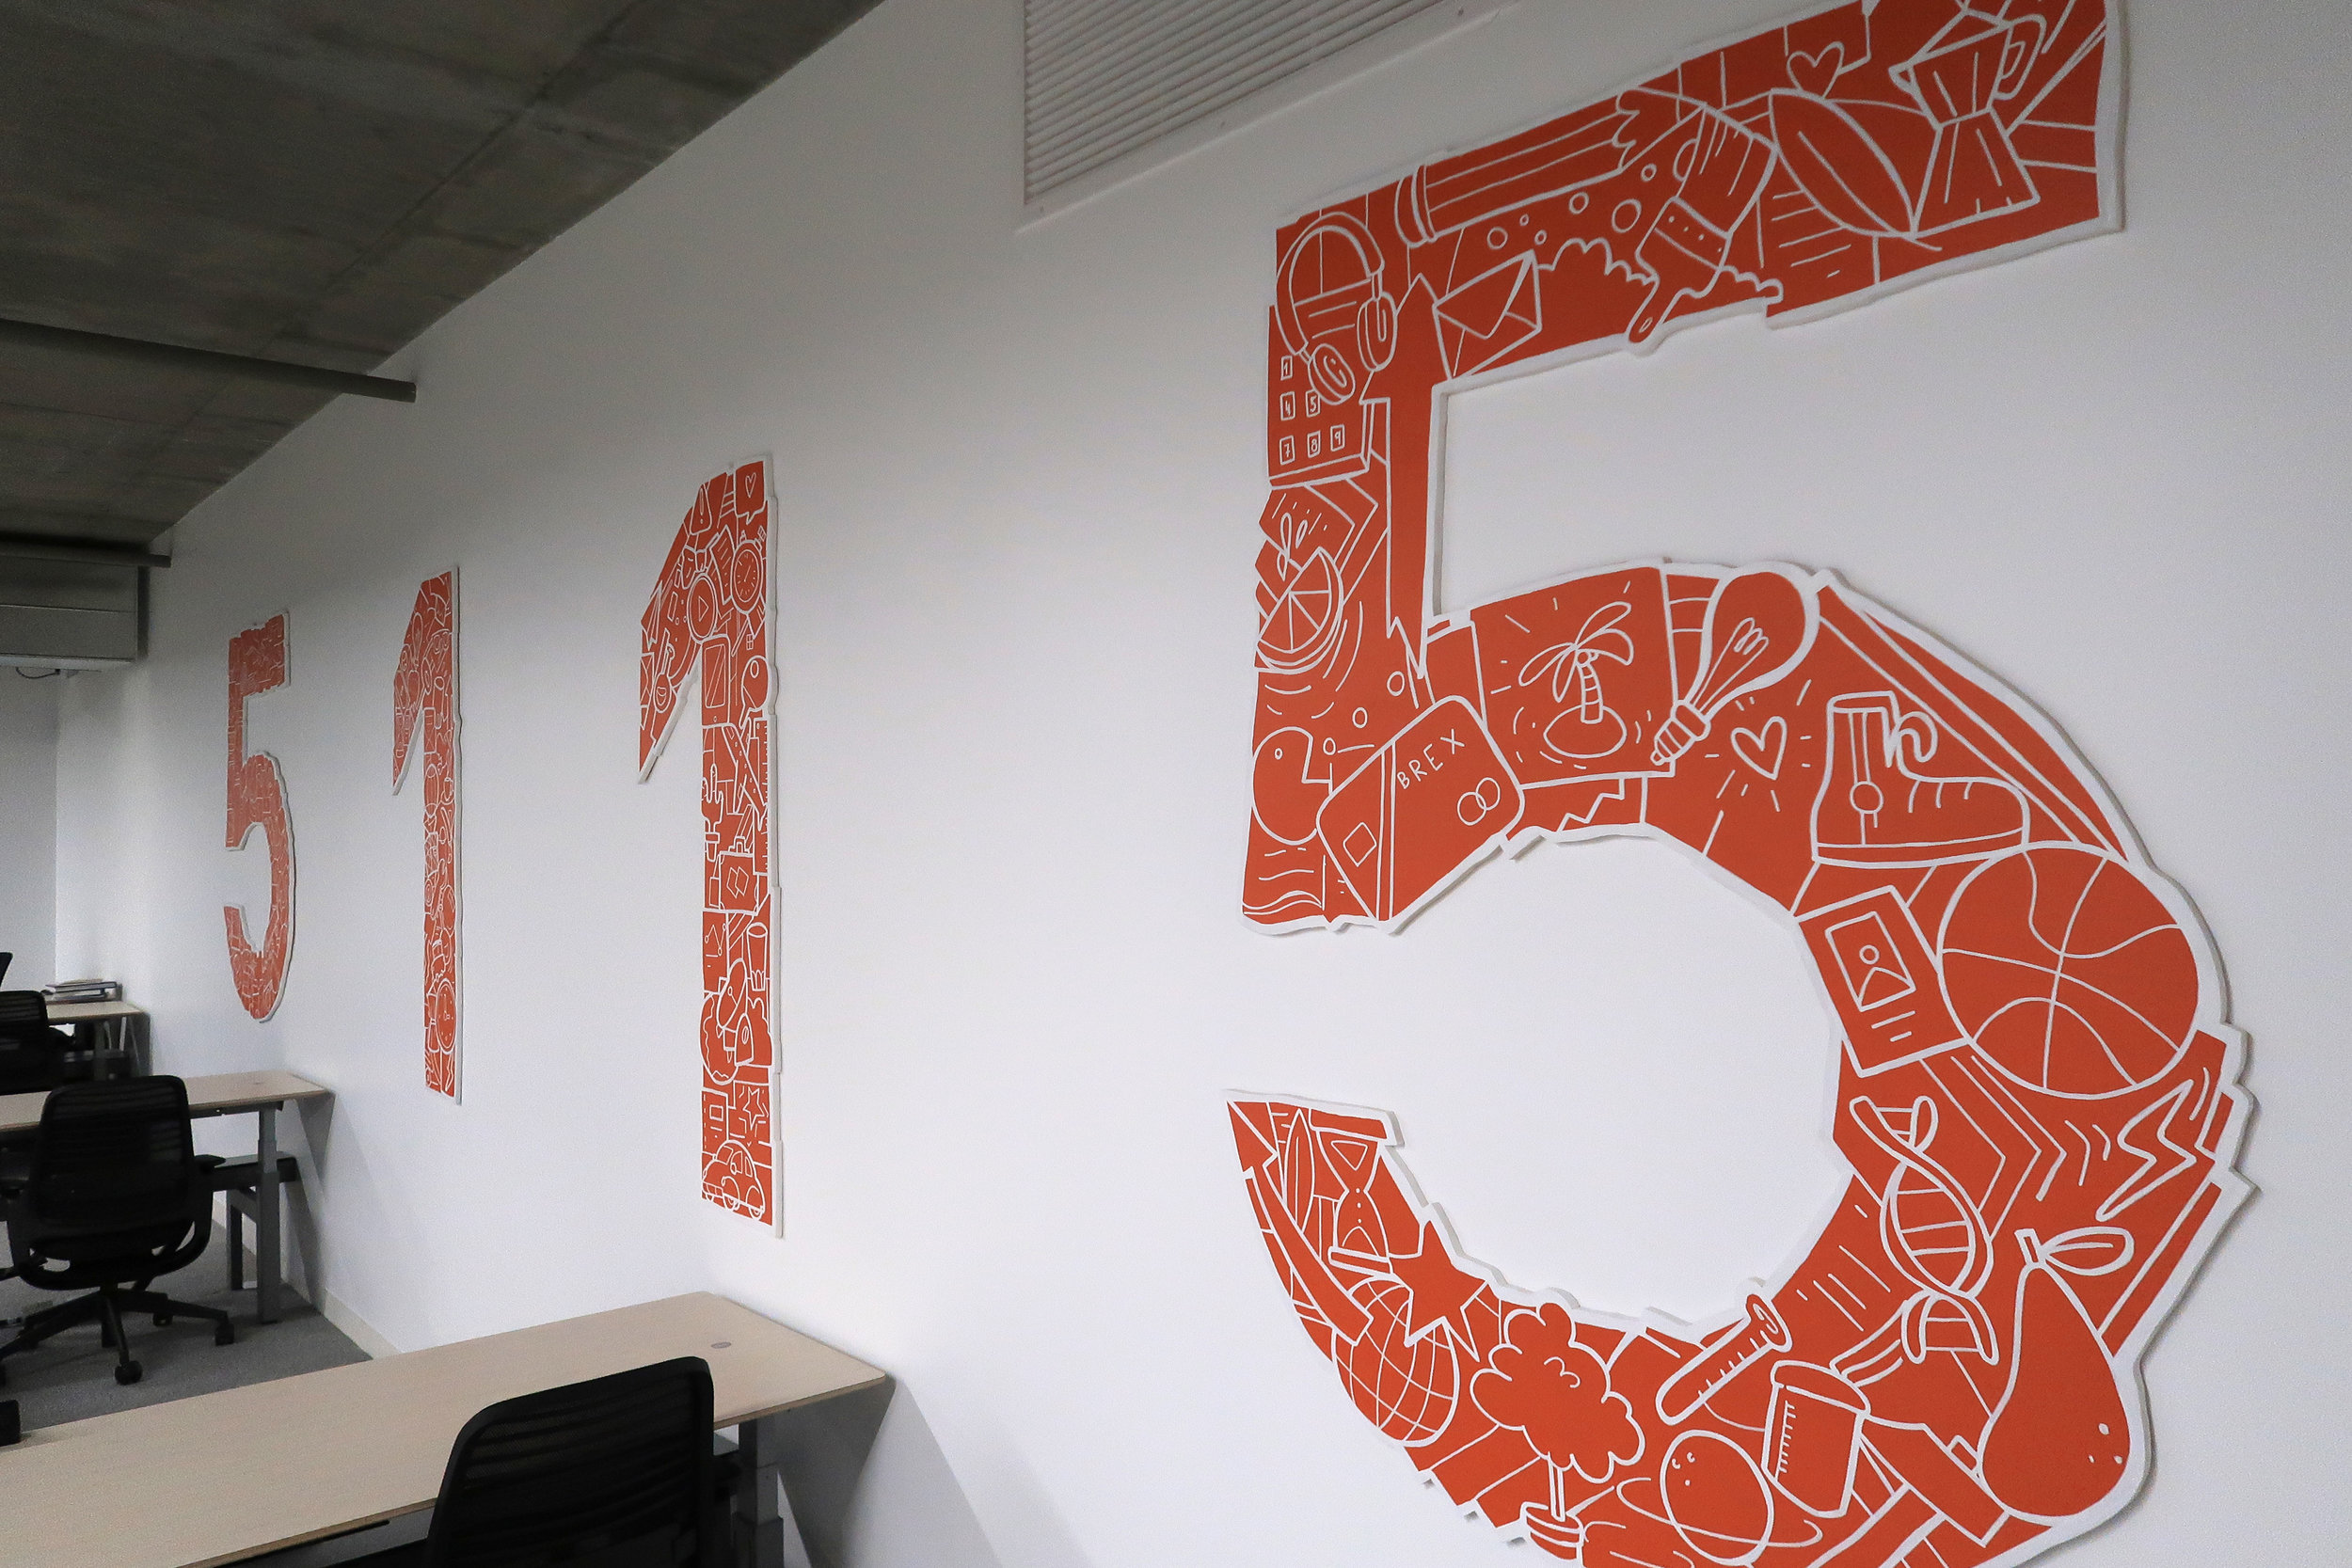 Office-commercial-mural-san-francisco-brex-alcove-wall-and-wall-mural-company_004.jpeg